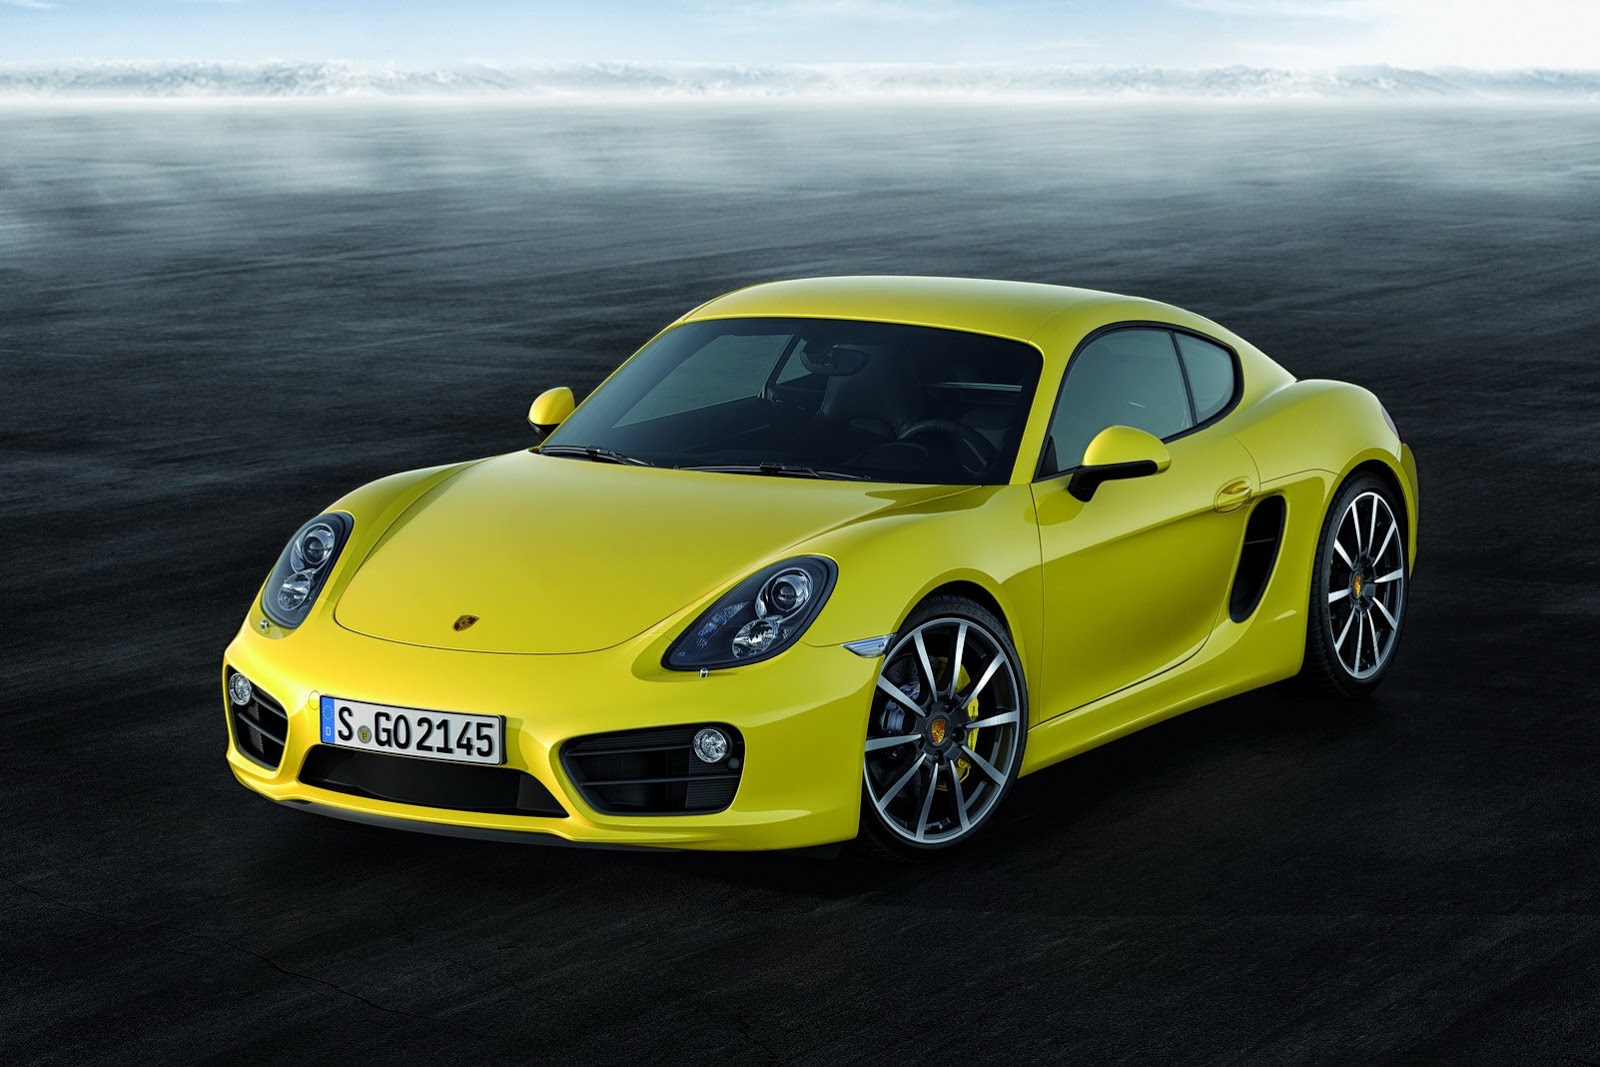 Porsche Cayman 2014 ( 2014 Porsche Cayman Specs, New Porsche Cayman review, Porsche Cayman 2014 Price, 2014 Porsche Cayman Price, 2014 Porsche Cayman features, 2014 Porsche Cayman launch, 2014 Porsche Cayman wallpaper, 2014 Porsche Cayman video, )